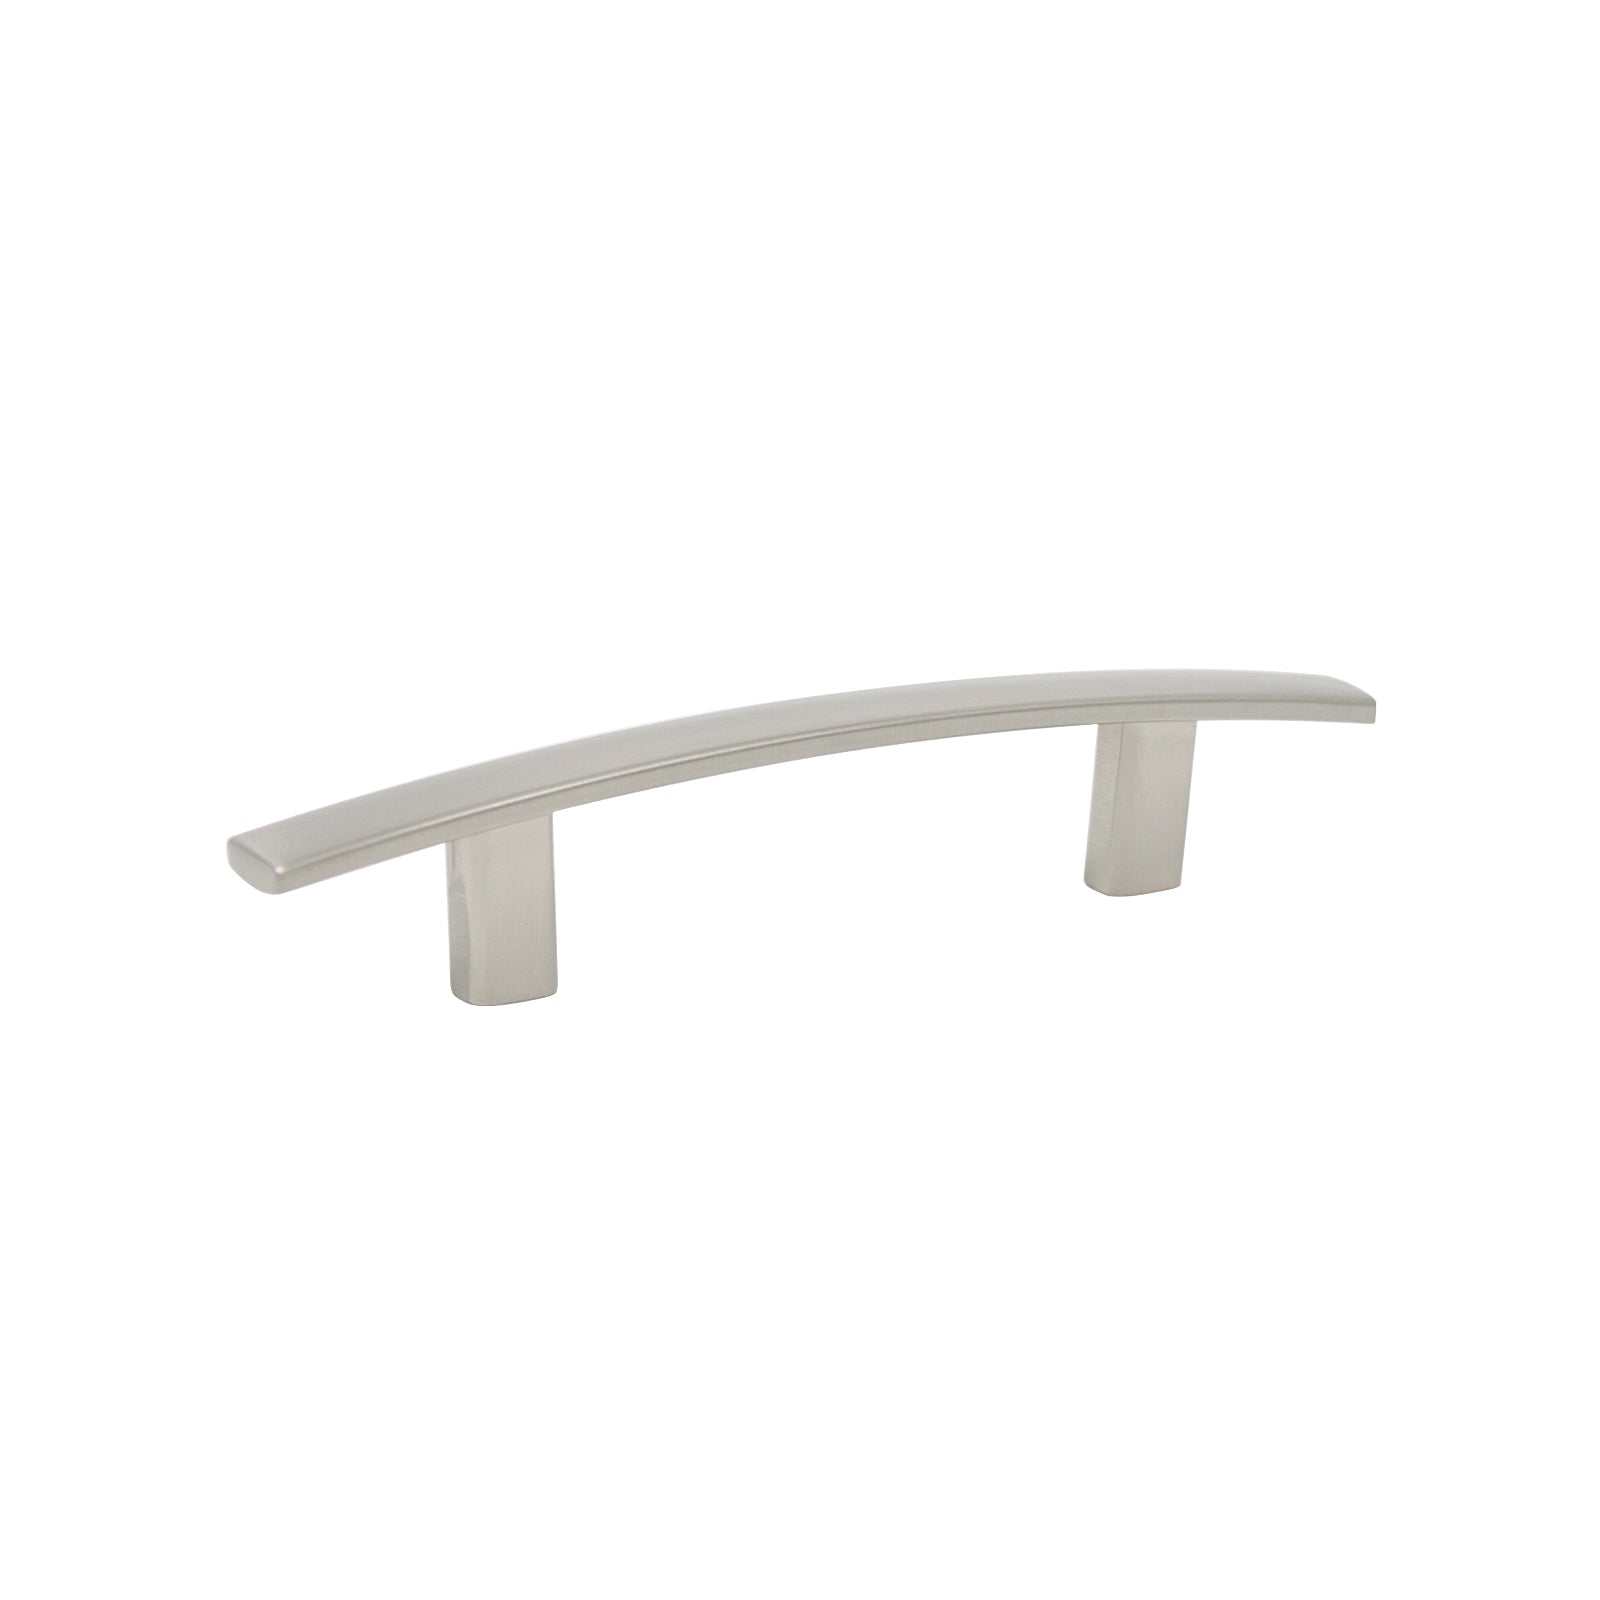 Satin Nickel Finish Cabinet Handles Curved Subtle Arch Style 3inch 76m Probrico